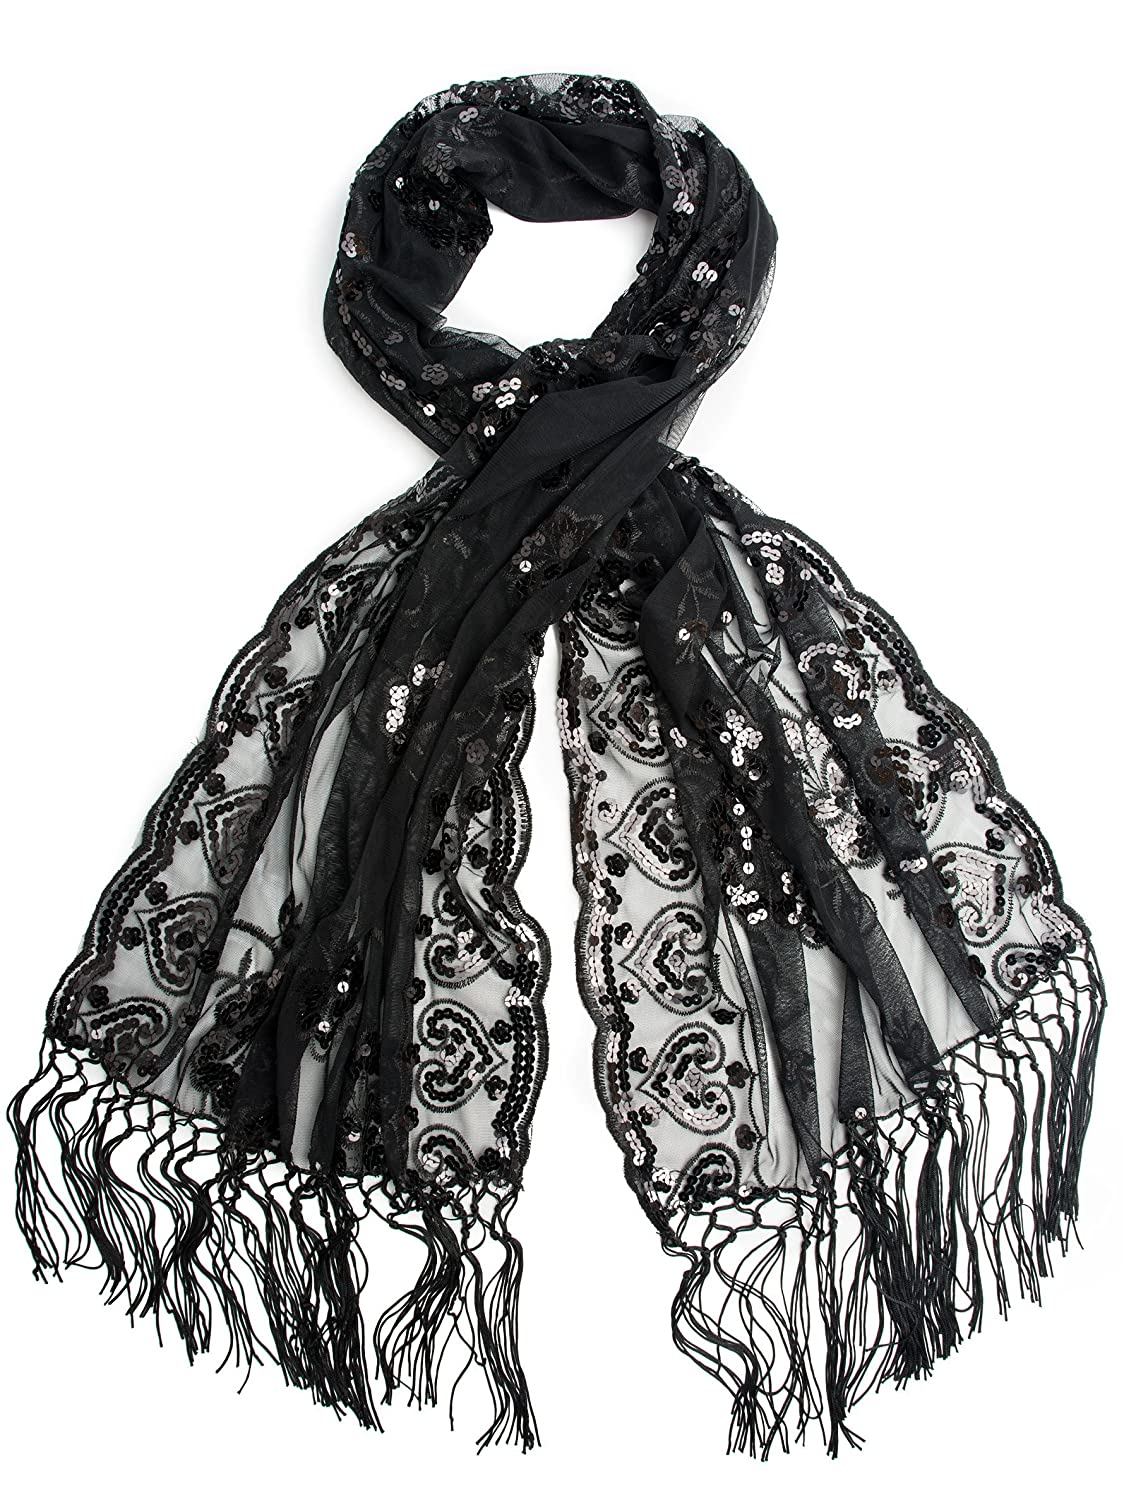 Victorian Inspired Womens Clothing Black Madison Shawl Long Fringe Sequin Evening Wrap $14.95 AT vintagedancer.com